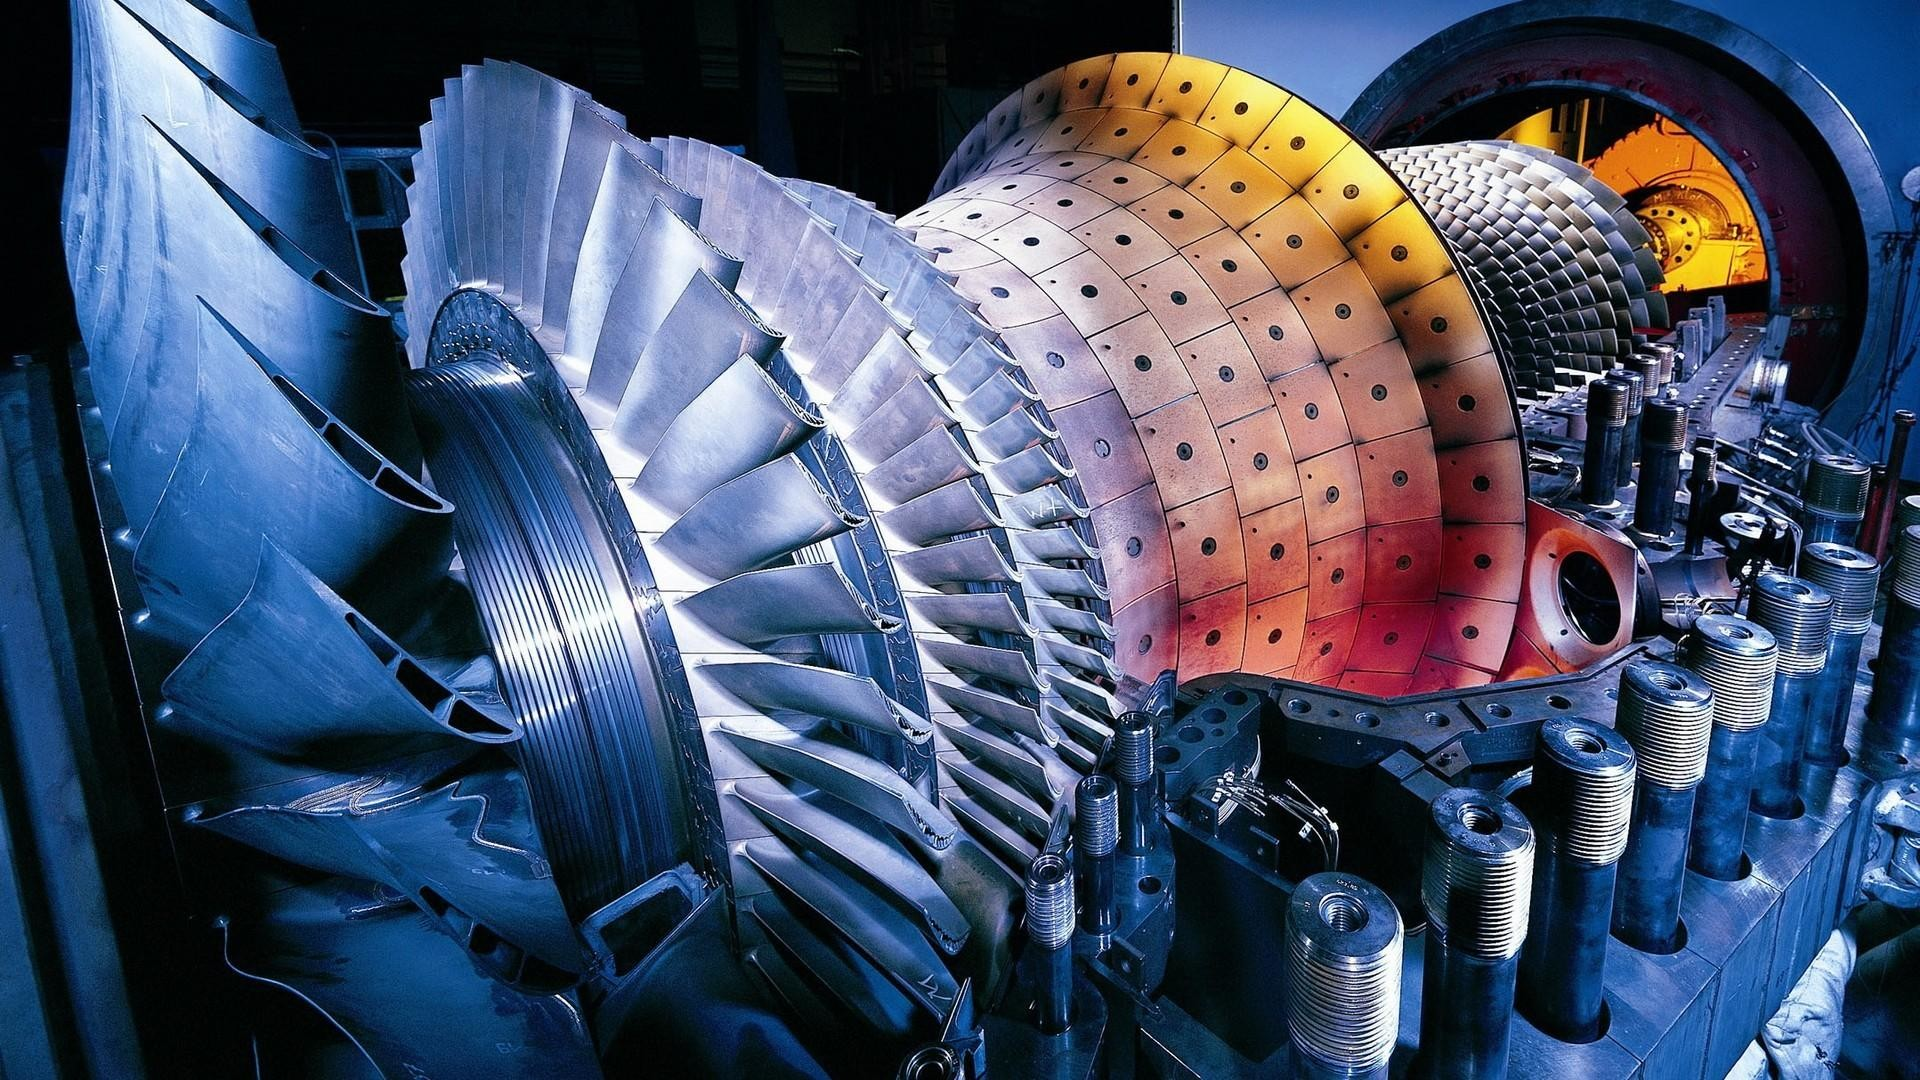 Cern large hadron collider physics science wallpaper